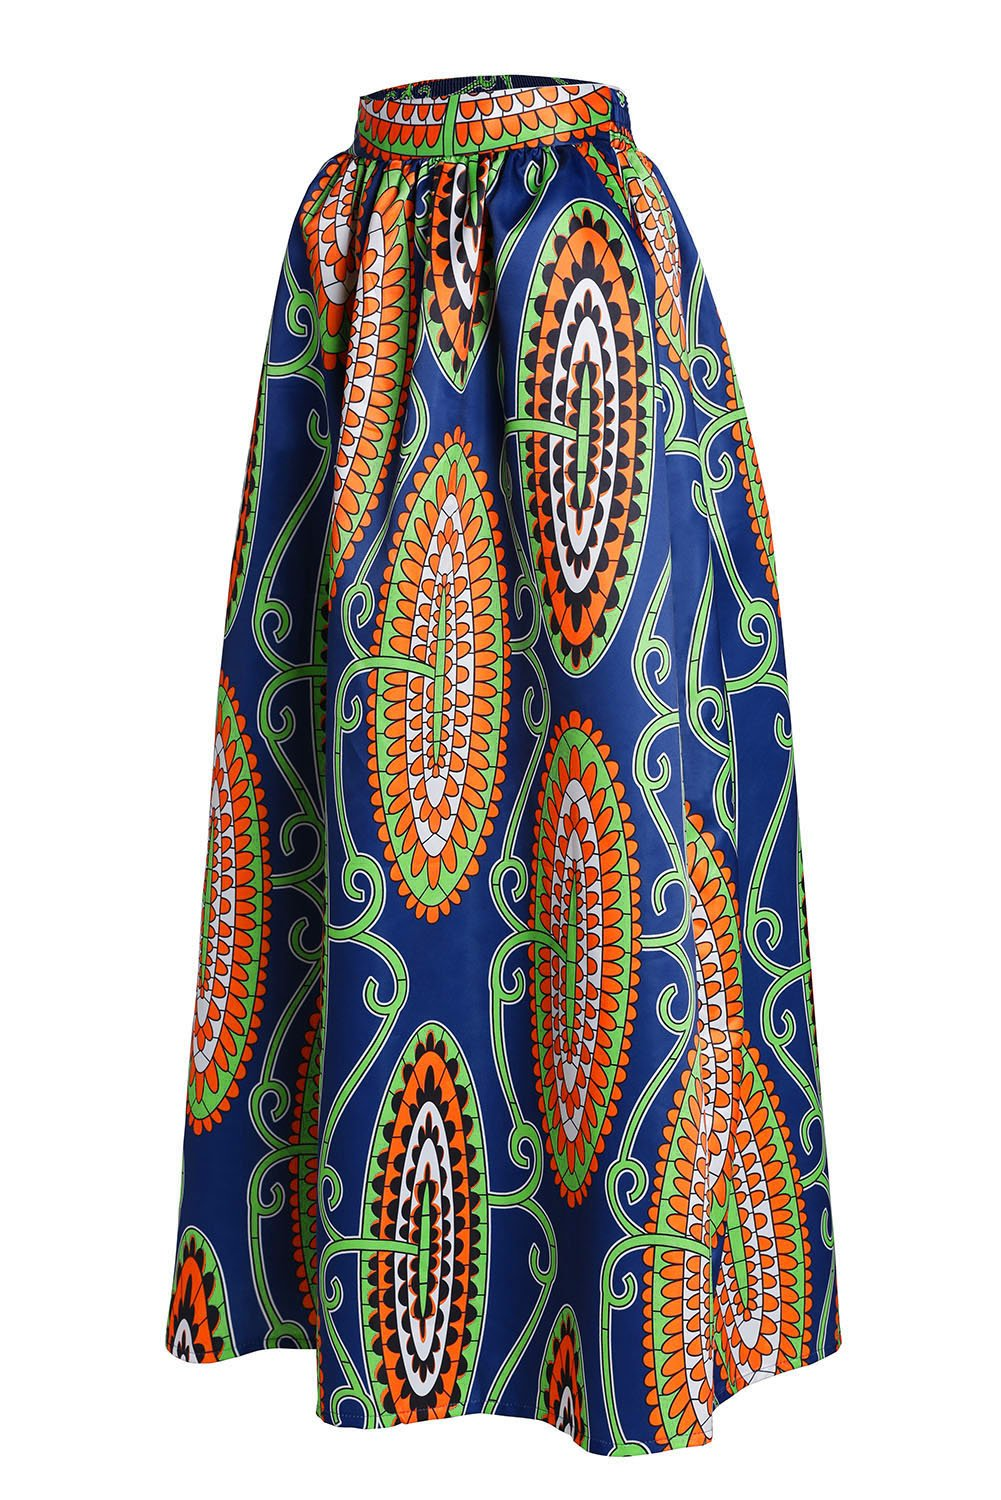 Asvivid Women's African Floral Print Maxi Skirts A Line Long Skirts with Pocket(S-2XL) AF65008-V